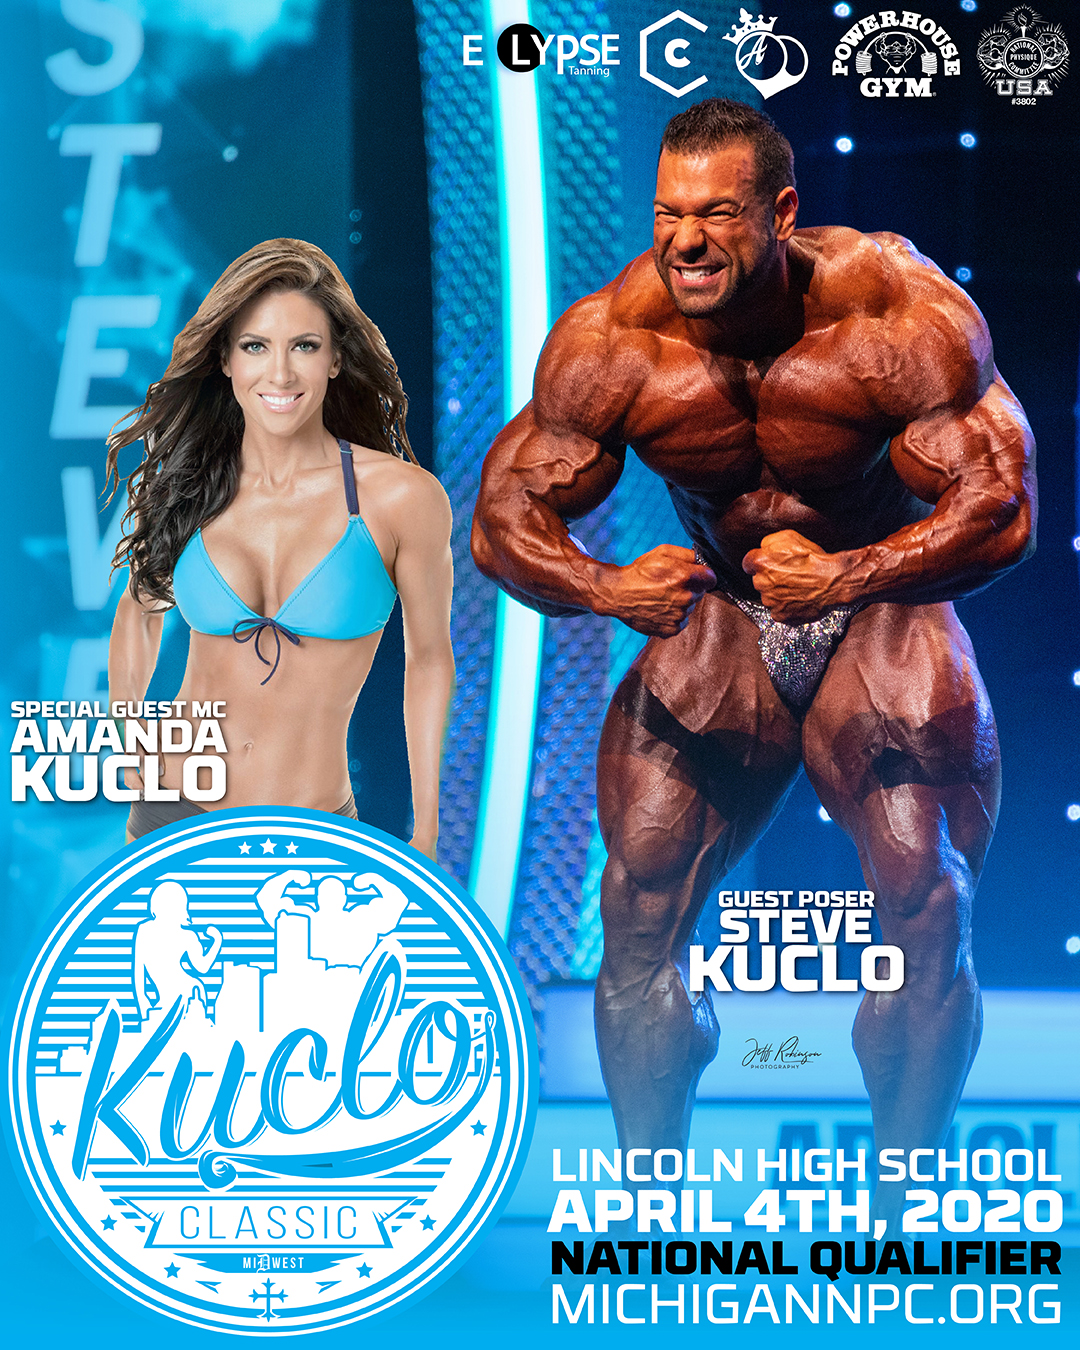 NPC Kuclo Classic Midwest Poster